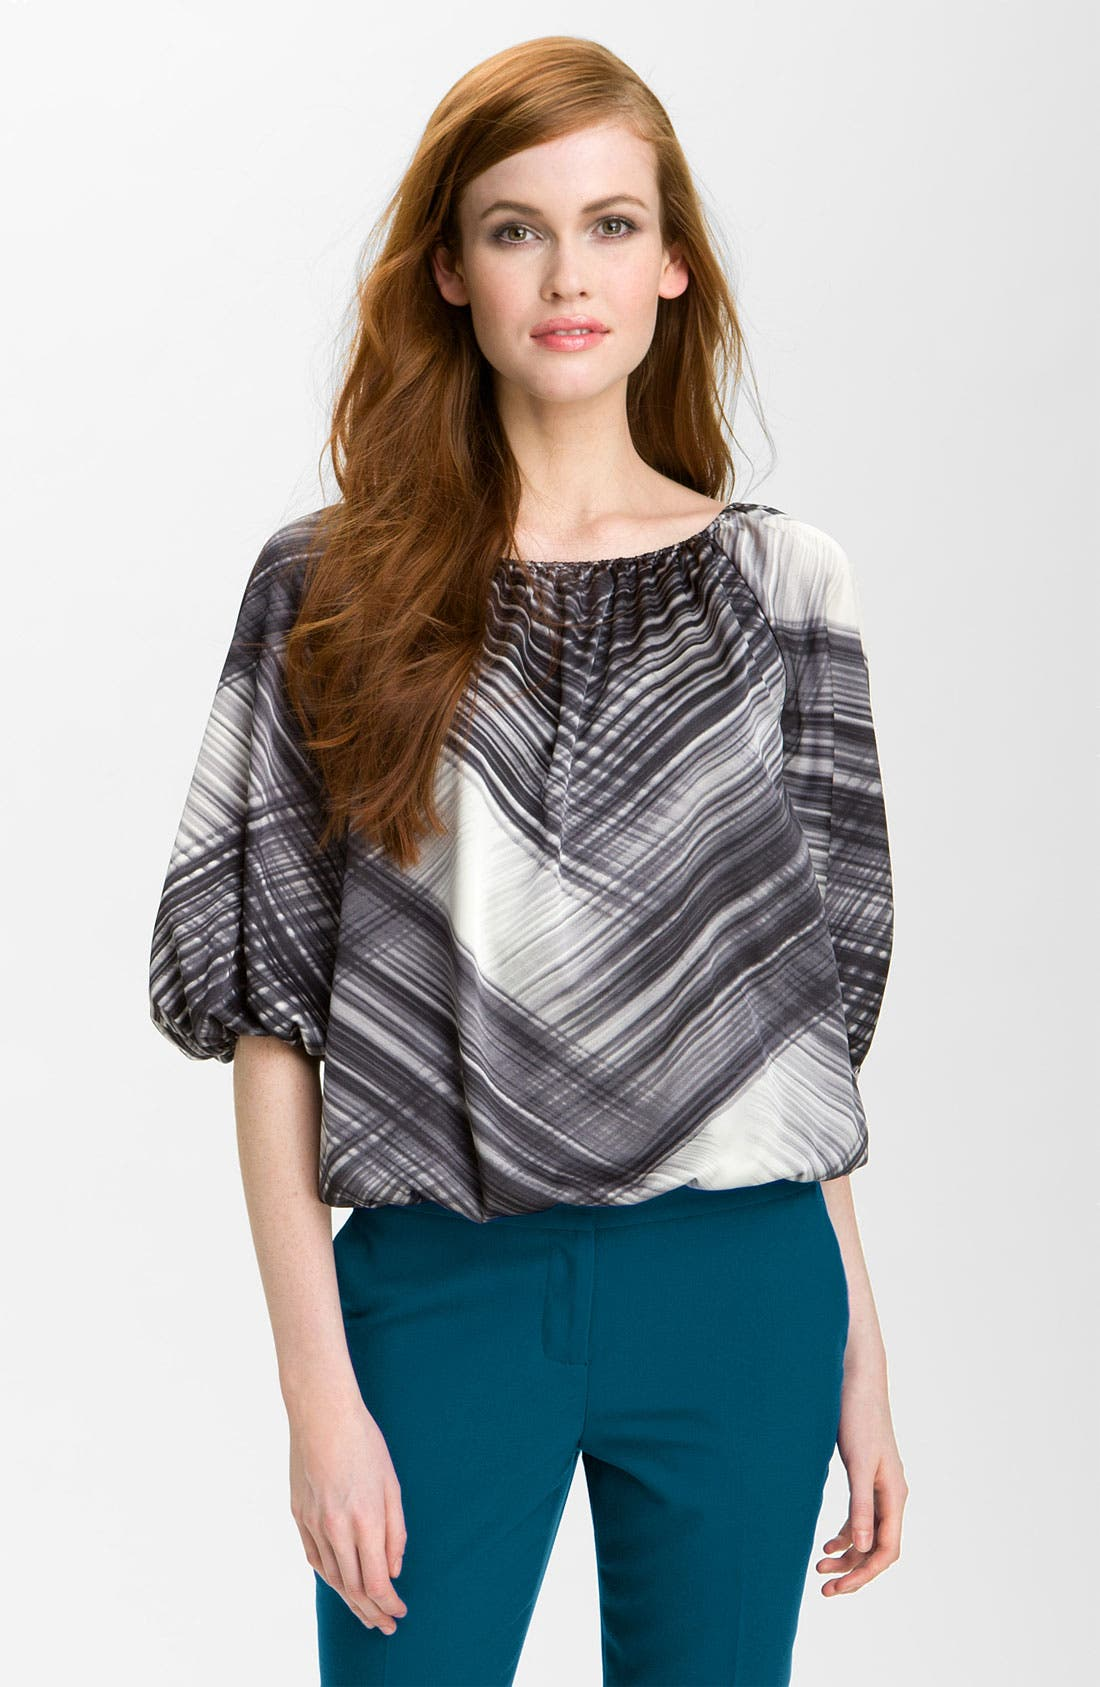 Alternate Image 1 Selected - Vince Camuto 'Brushstrokes' Peasant Blouse (Online Exclusive)